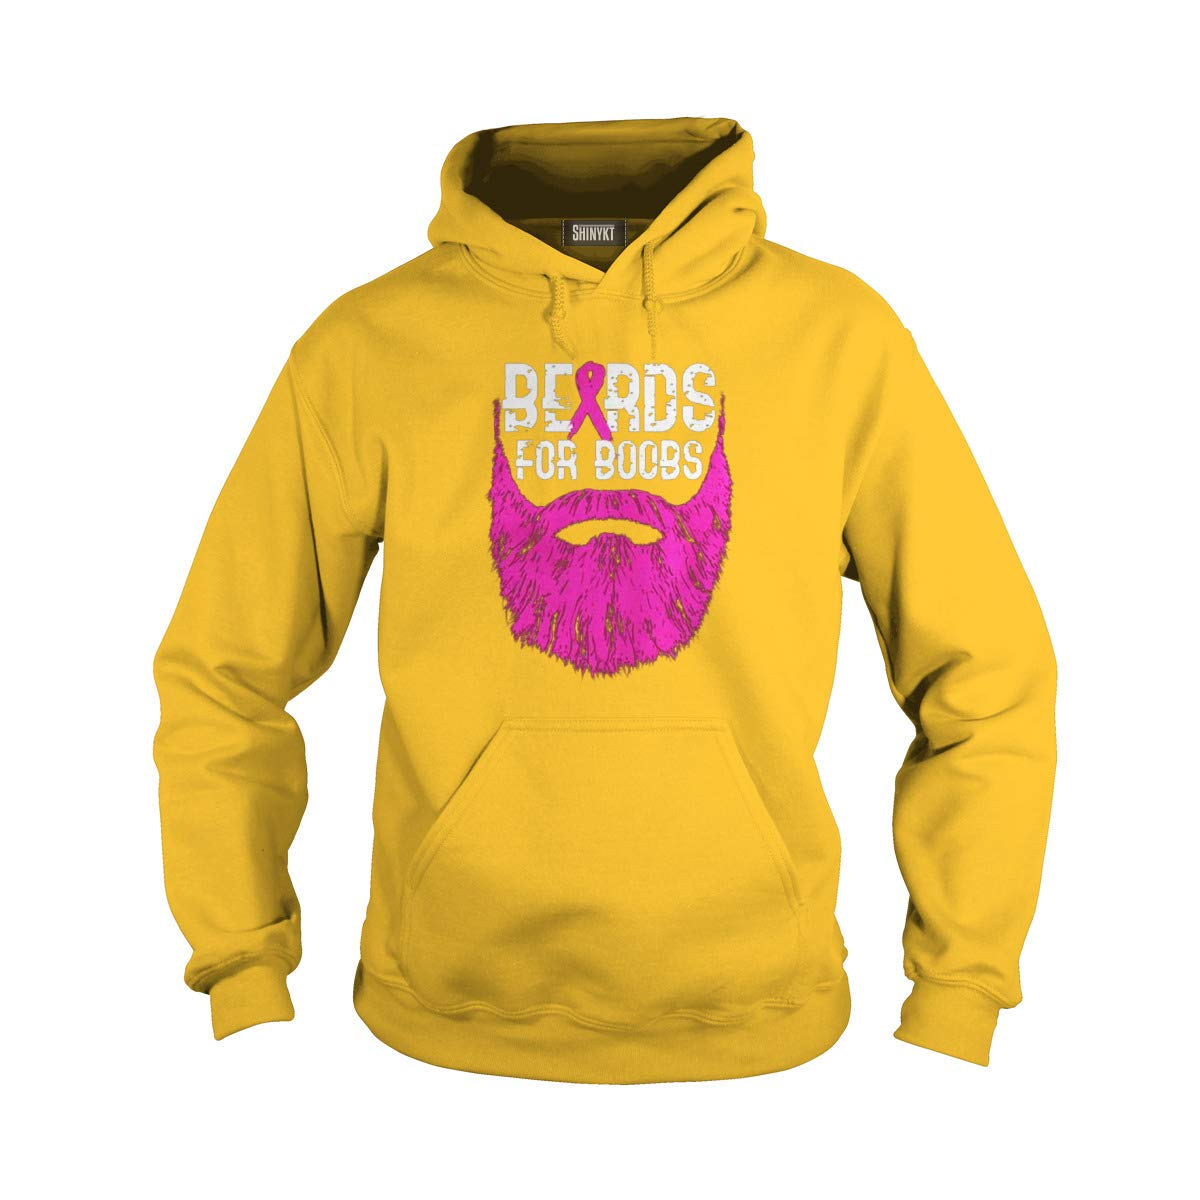 Beards For Boobs Breast Cancer T Shirt 8802